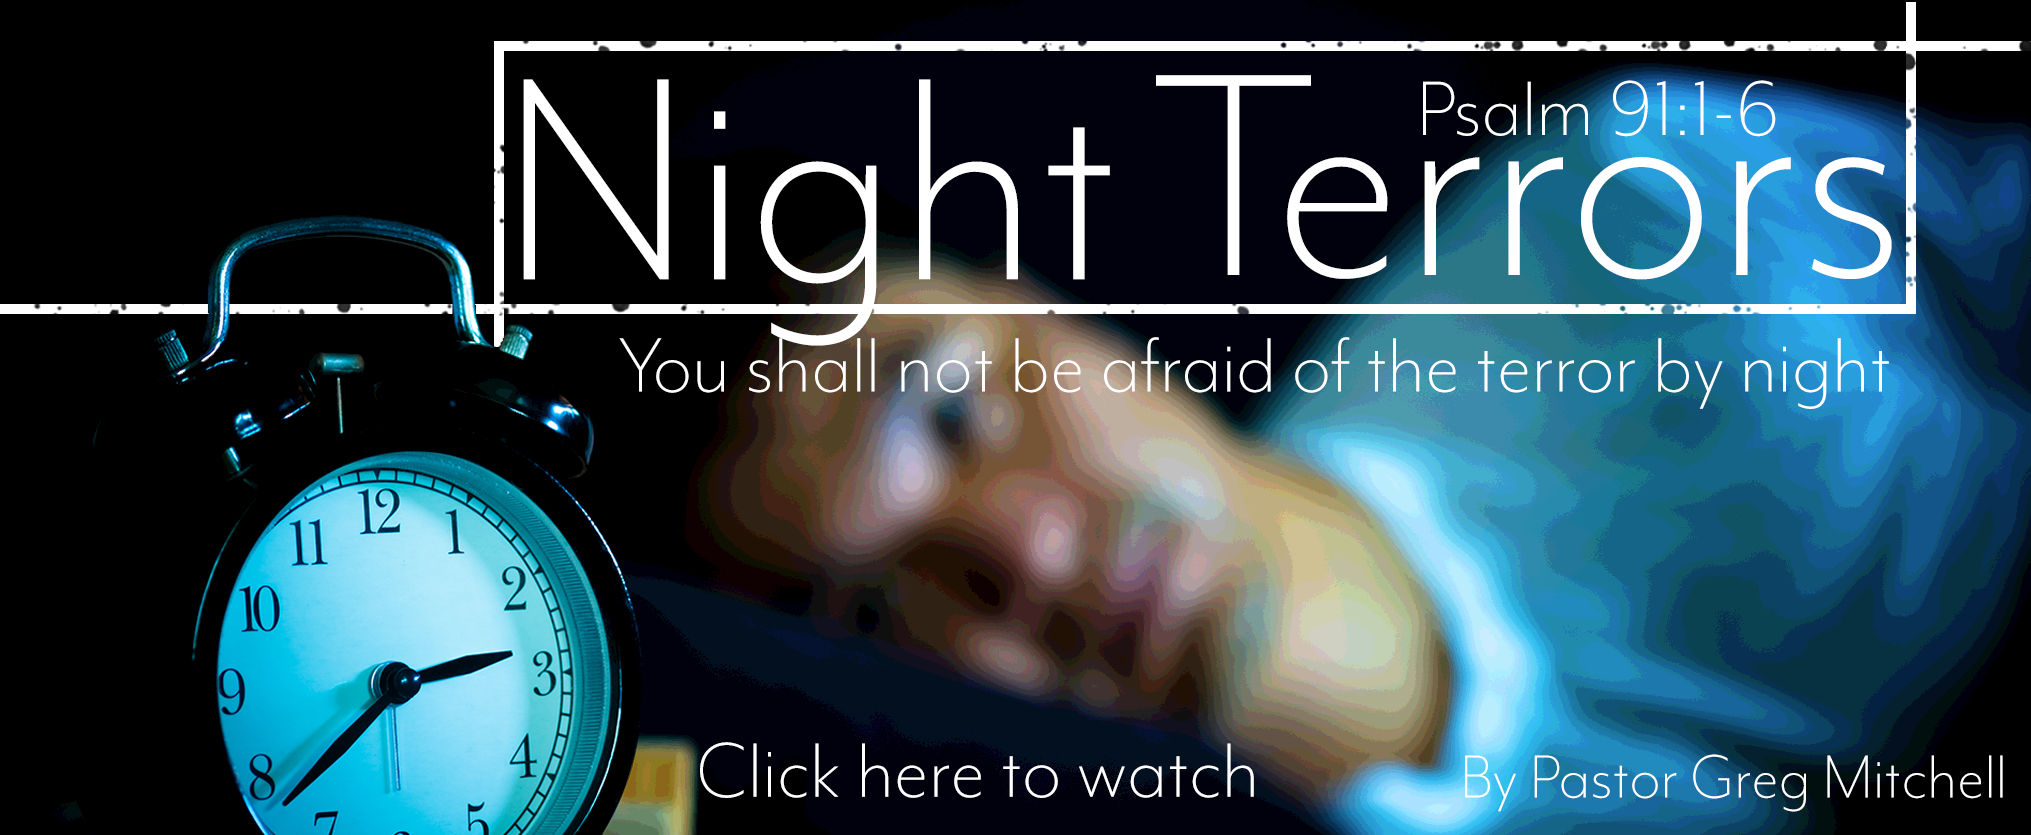 NIght Terrors web banner